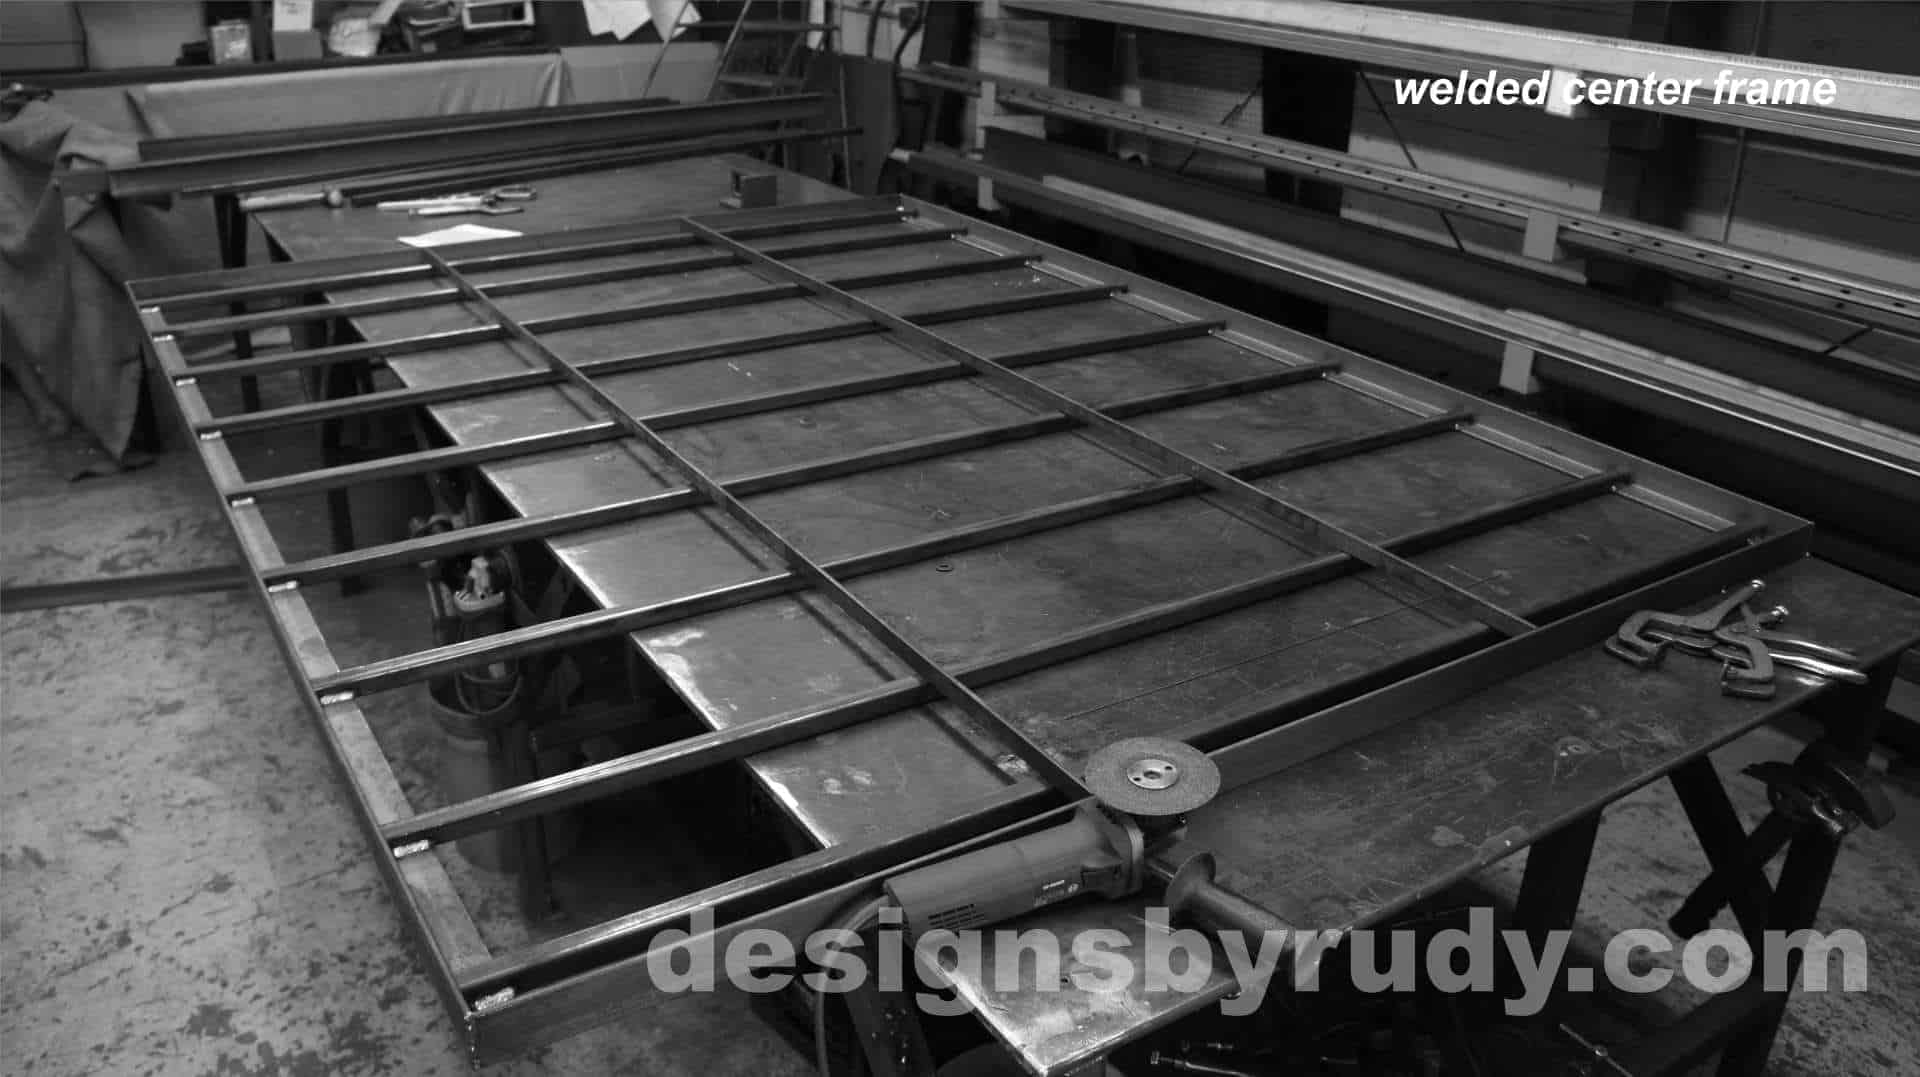 Conference room table, Designs by Rudy, welded center frame